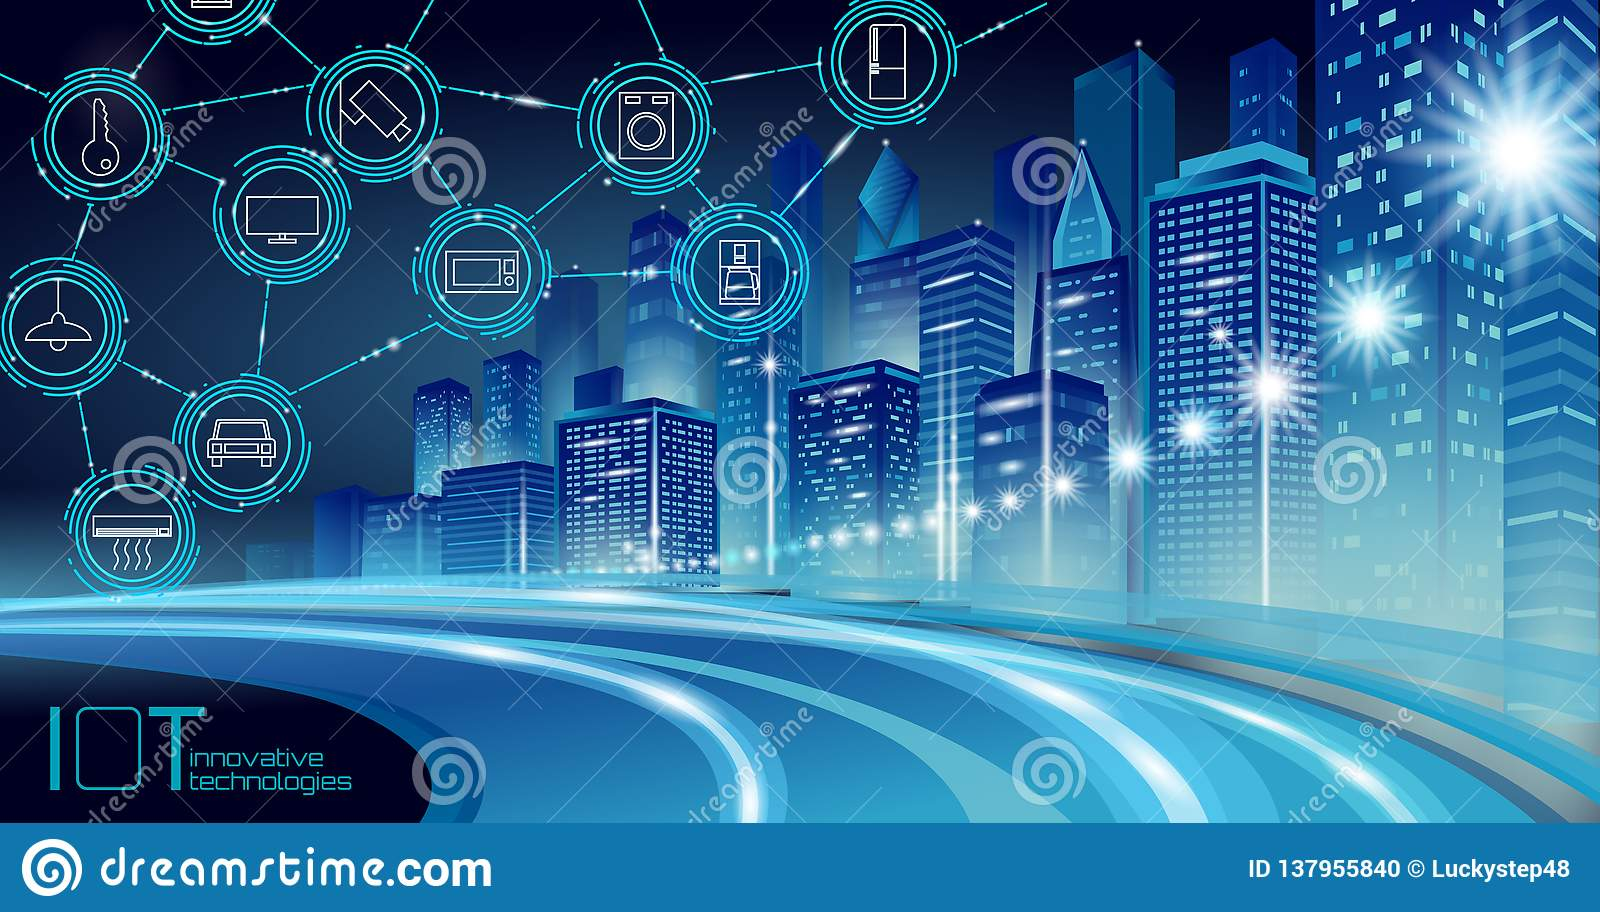 Internet of things low poly smart city 3D wire mesh. Intelligent building automation IOT concept. Modern wireless online